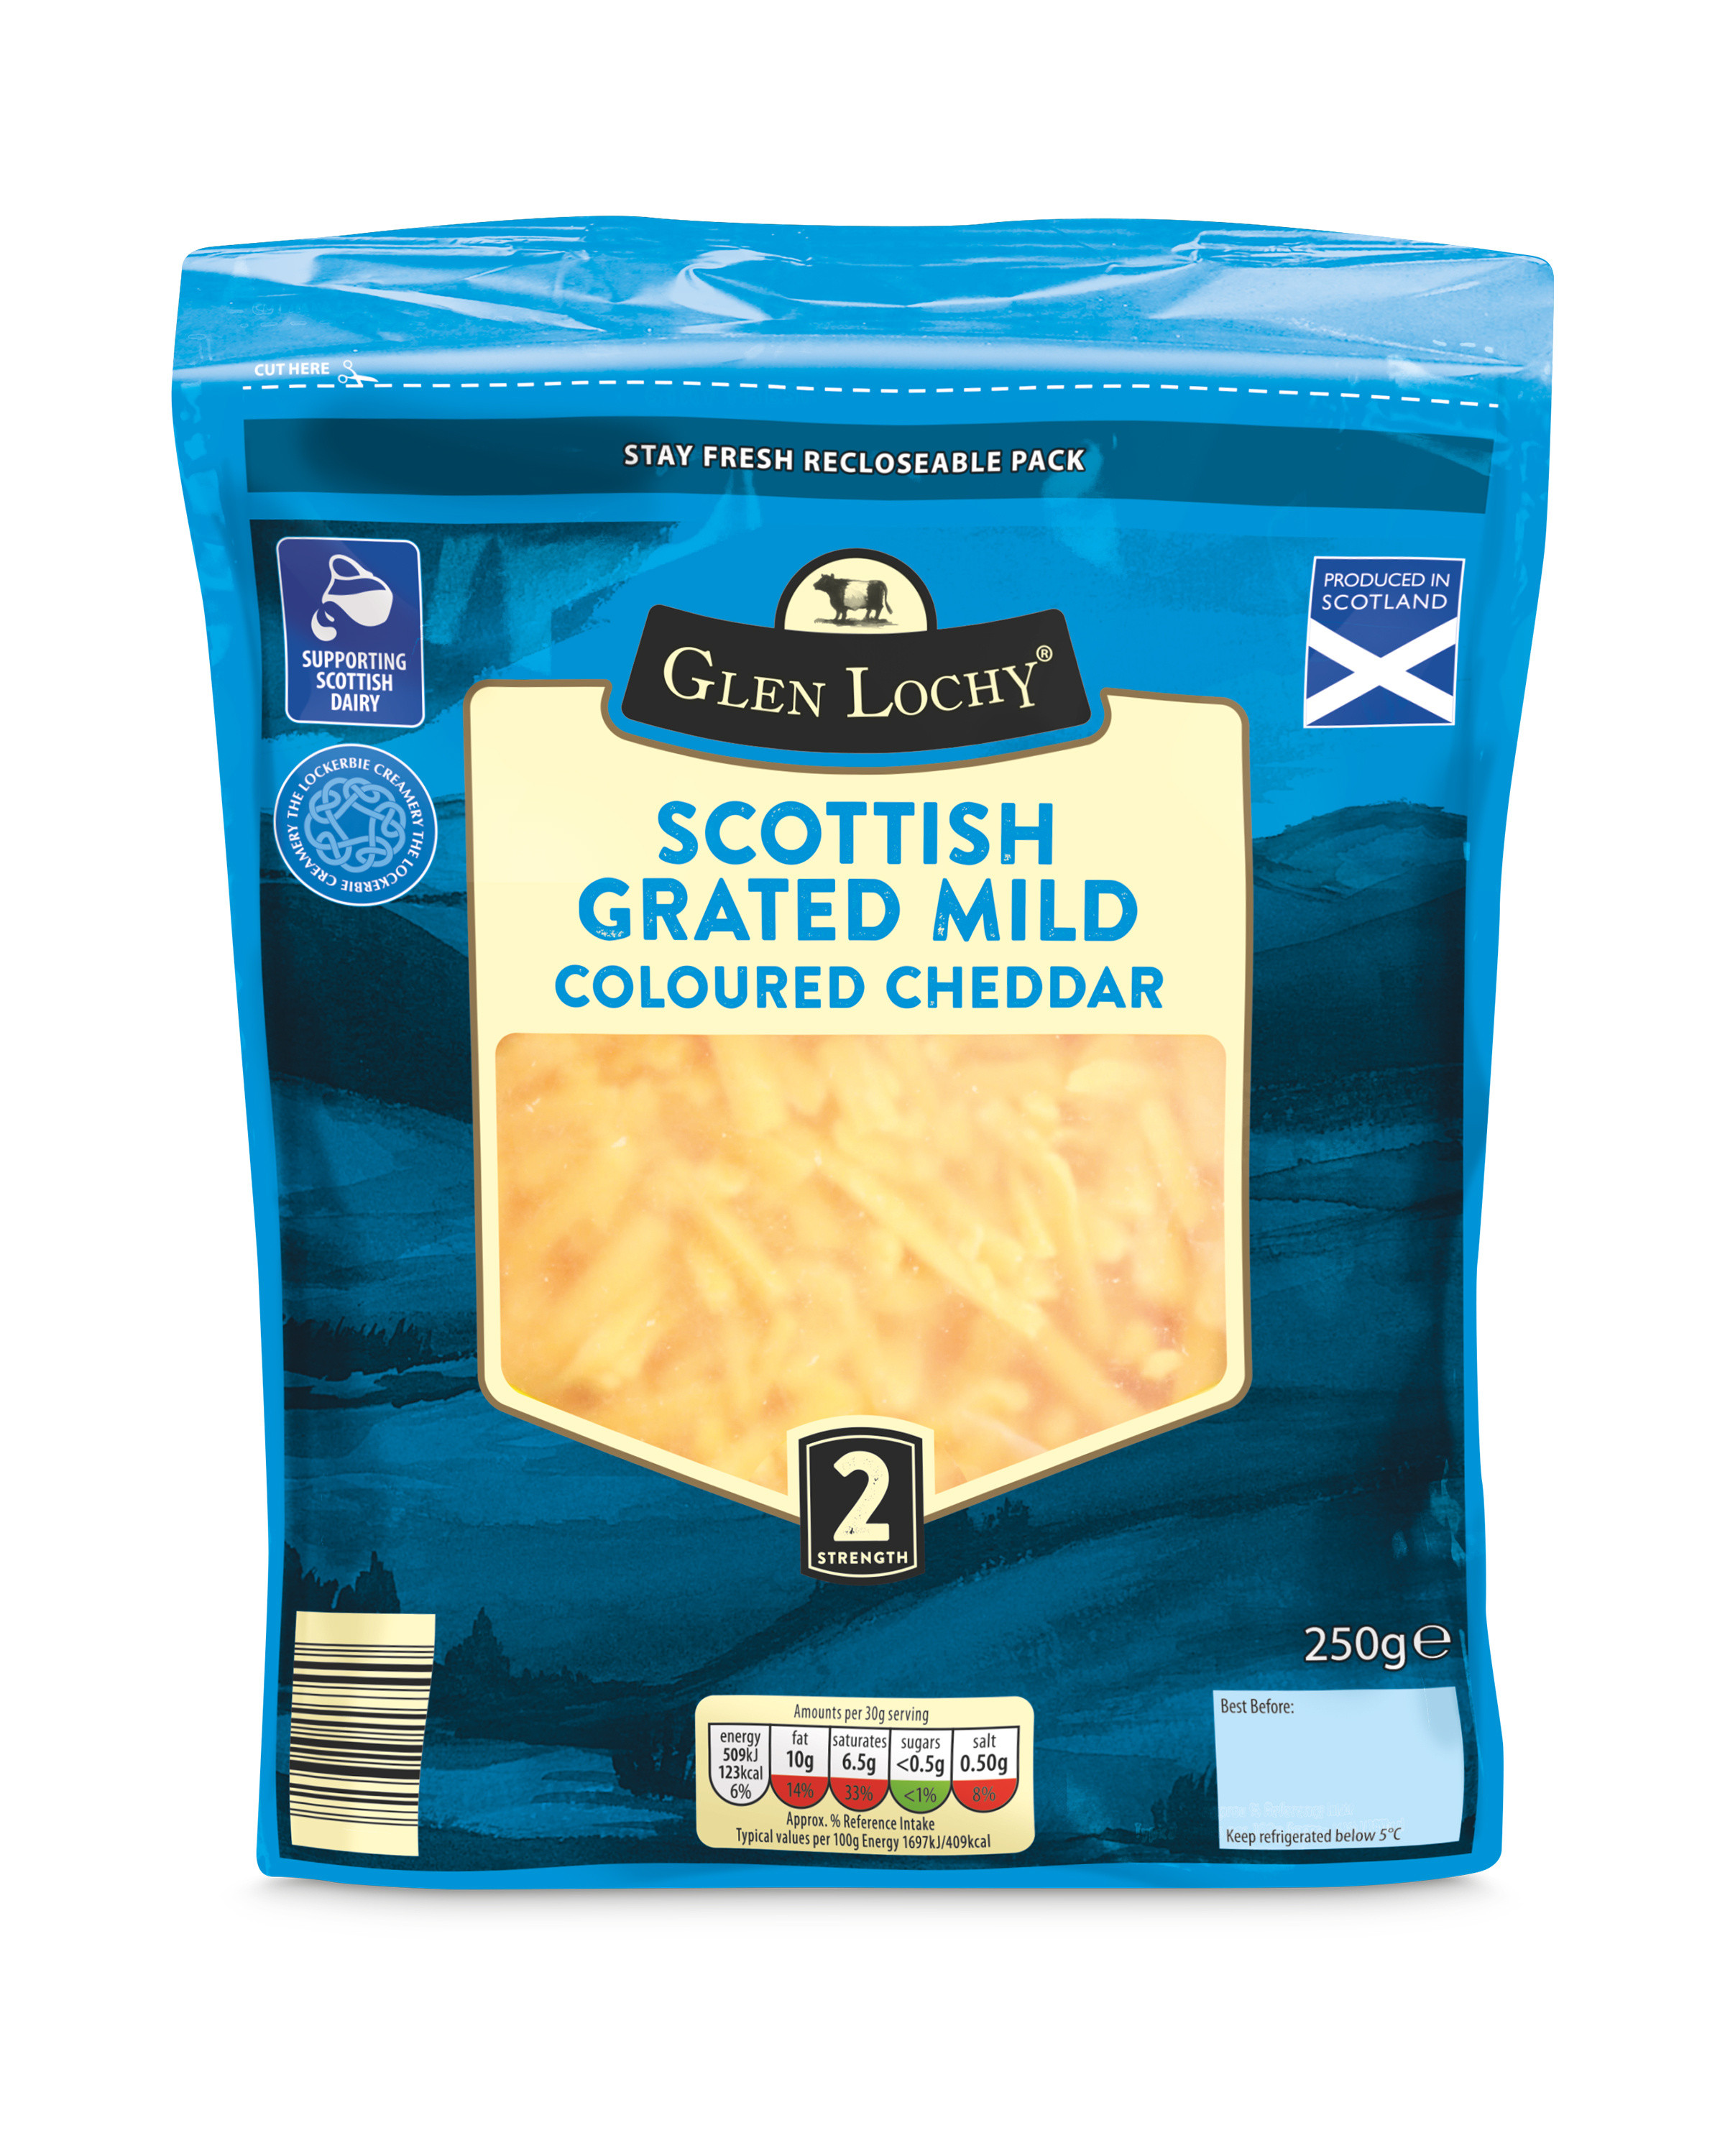 Grated Mild Coloured Cheddar